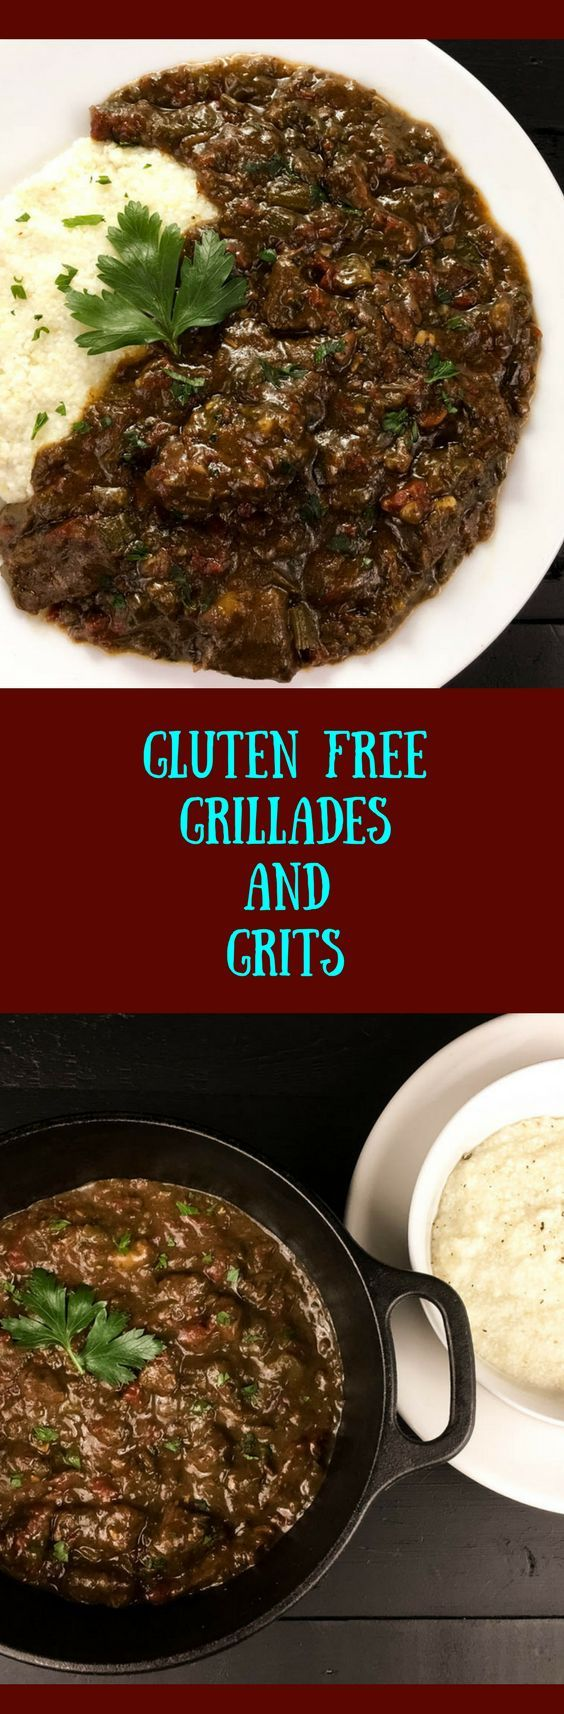 Gluten Free Grillades and Grits. A traditional south Louisiana Creole delicacy flavor authenticated with my Trinity Roux™️. Naturally grain free & Paleo grillades recipe sans grits.   http://asprinklingofcayenne.com